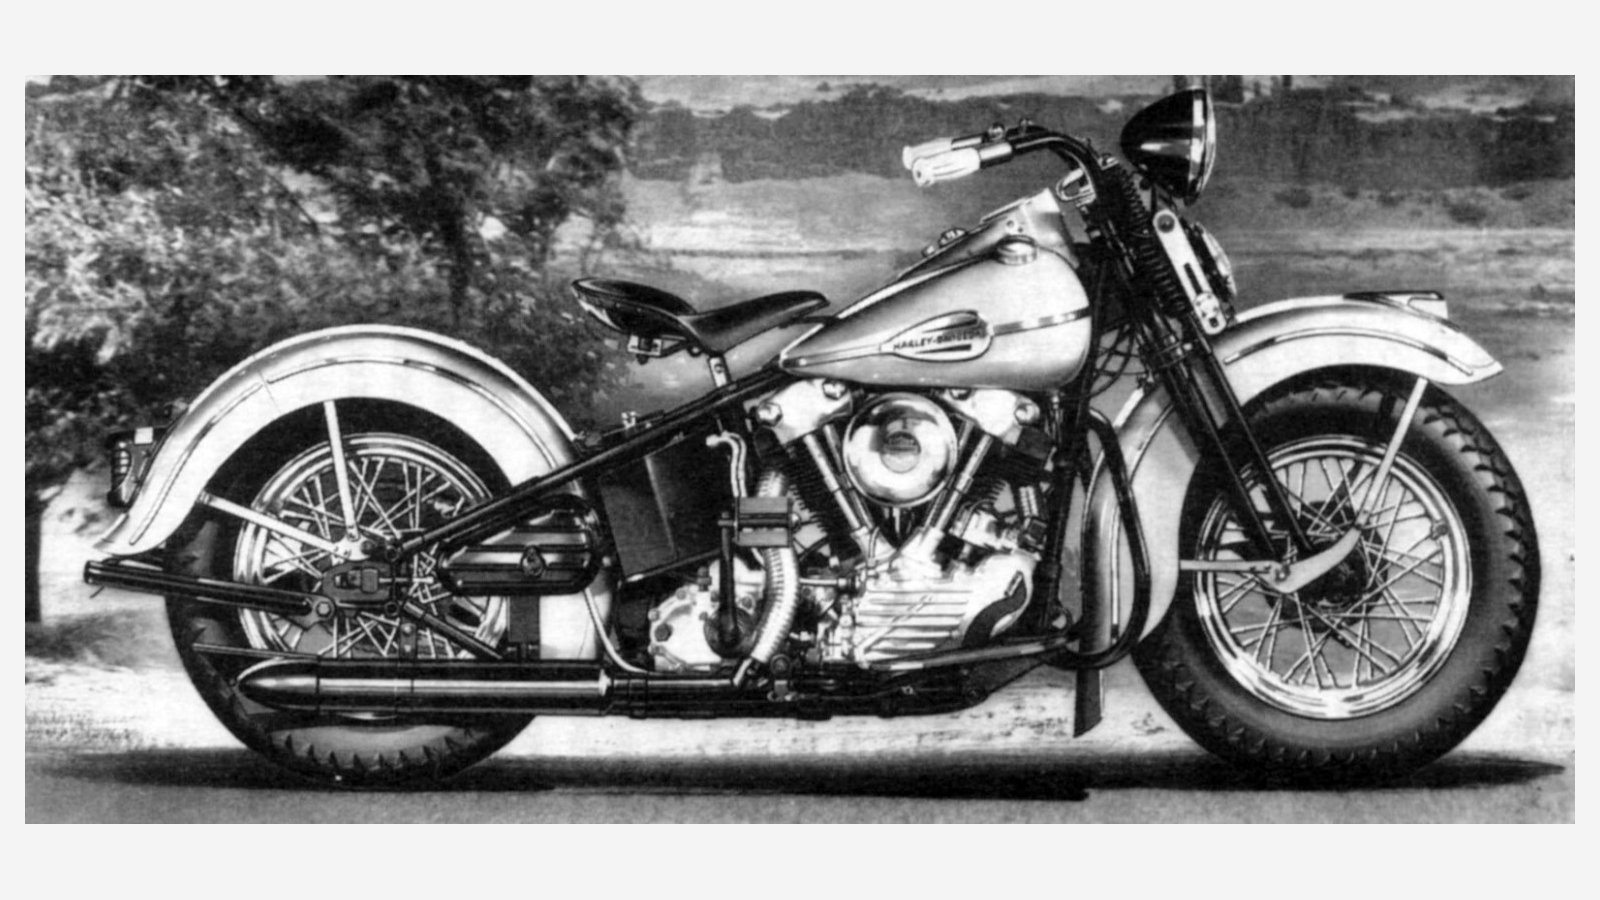 1941 H D Fl With 74ci Knucklehead Old Grand Dad Harley Davidson